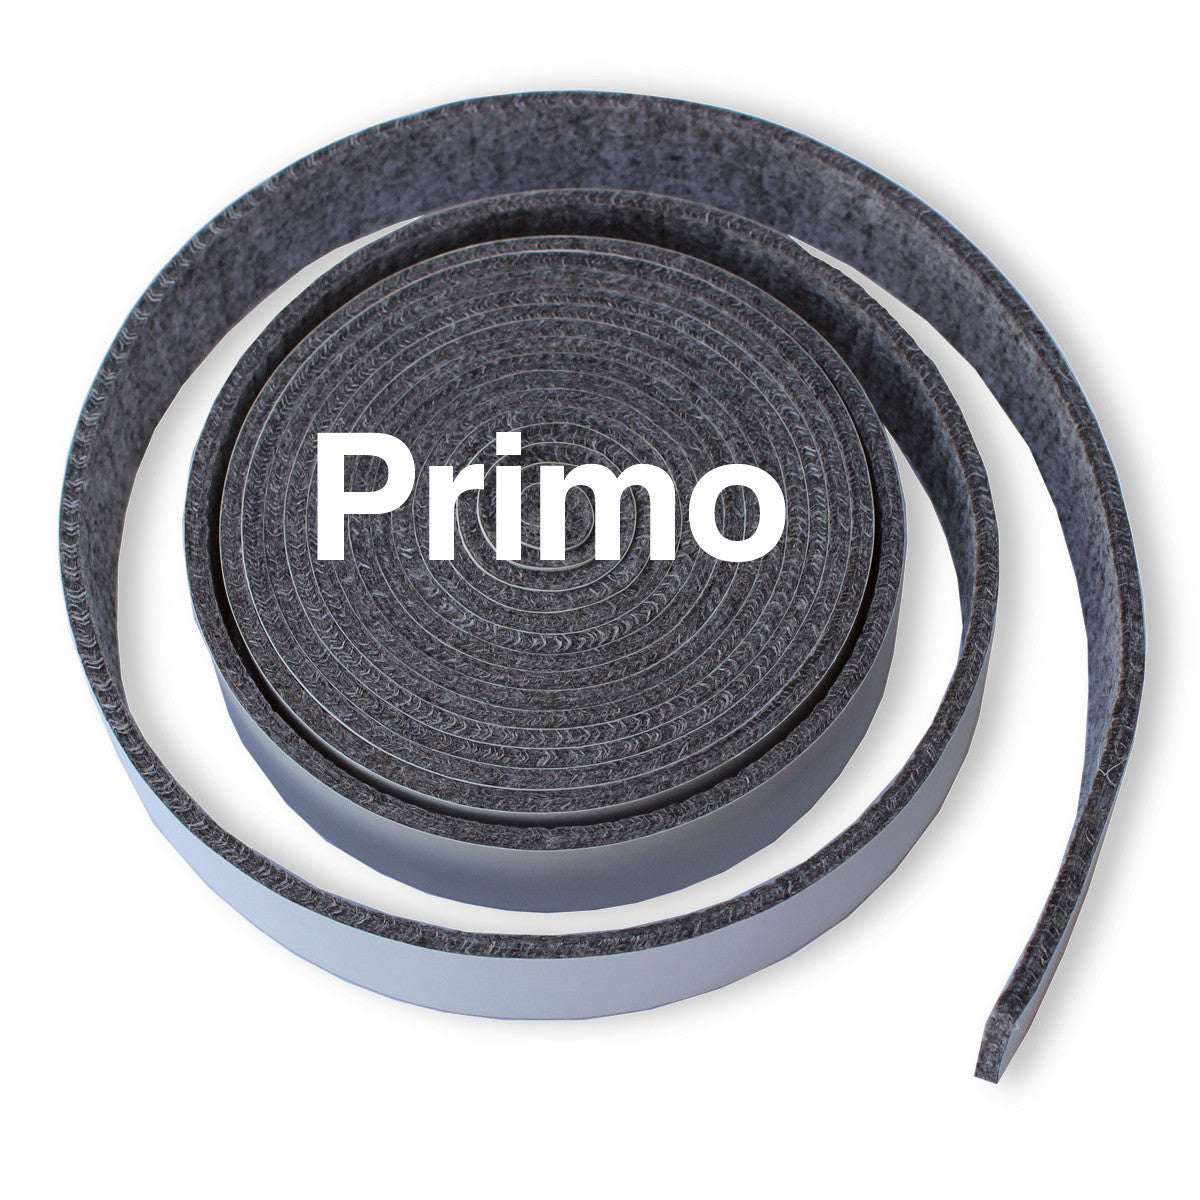 felt replacement gaskets for primo grills - Primo Grills